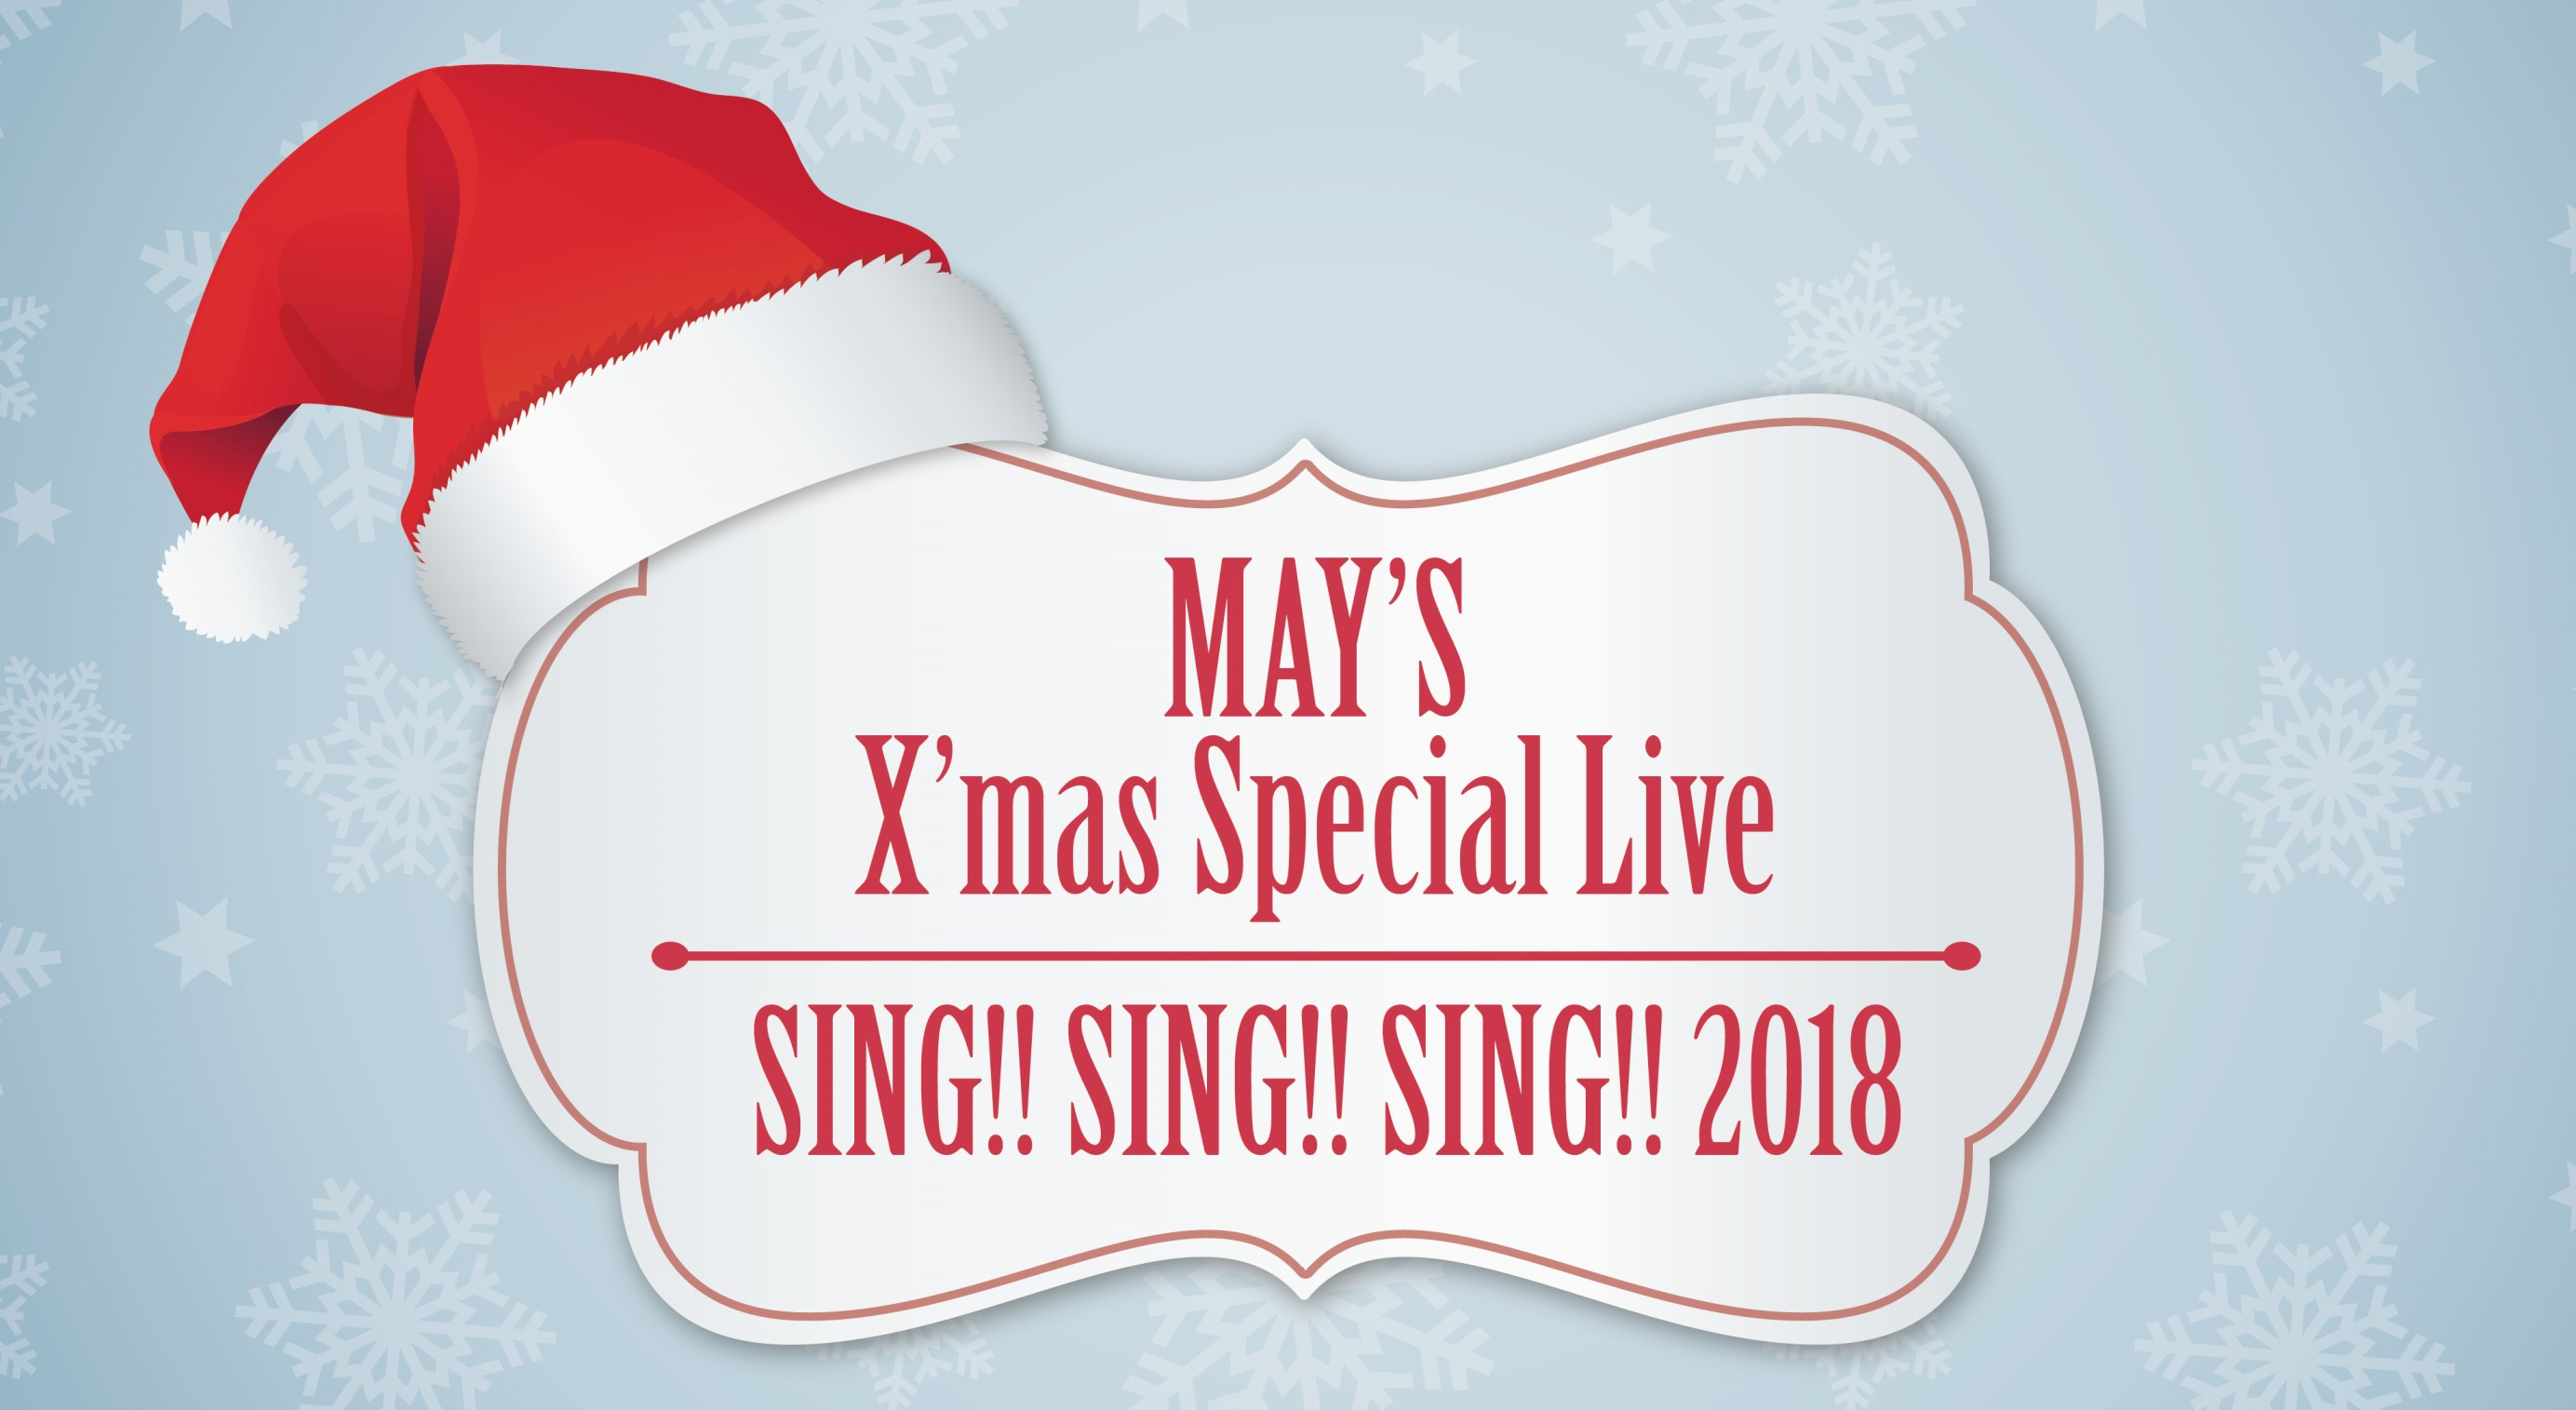 MAY'S X'mas Special Live SING SING SING!!! 2018